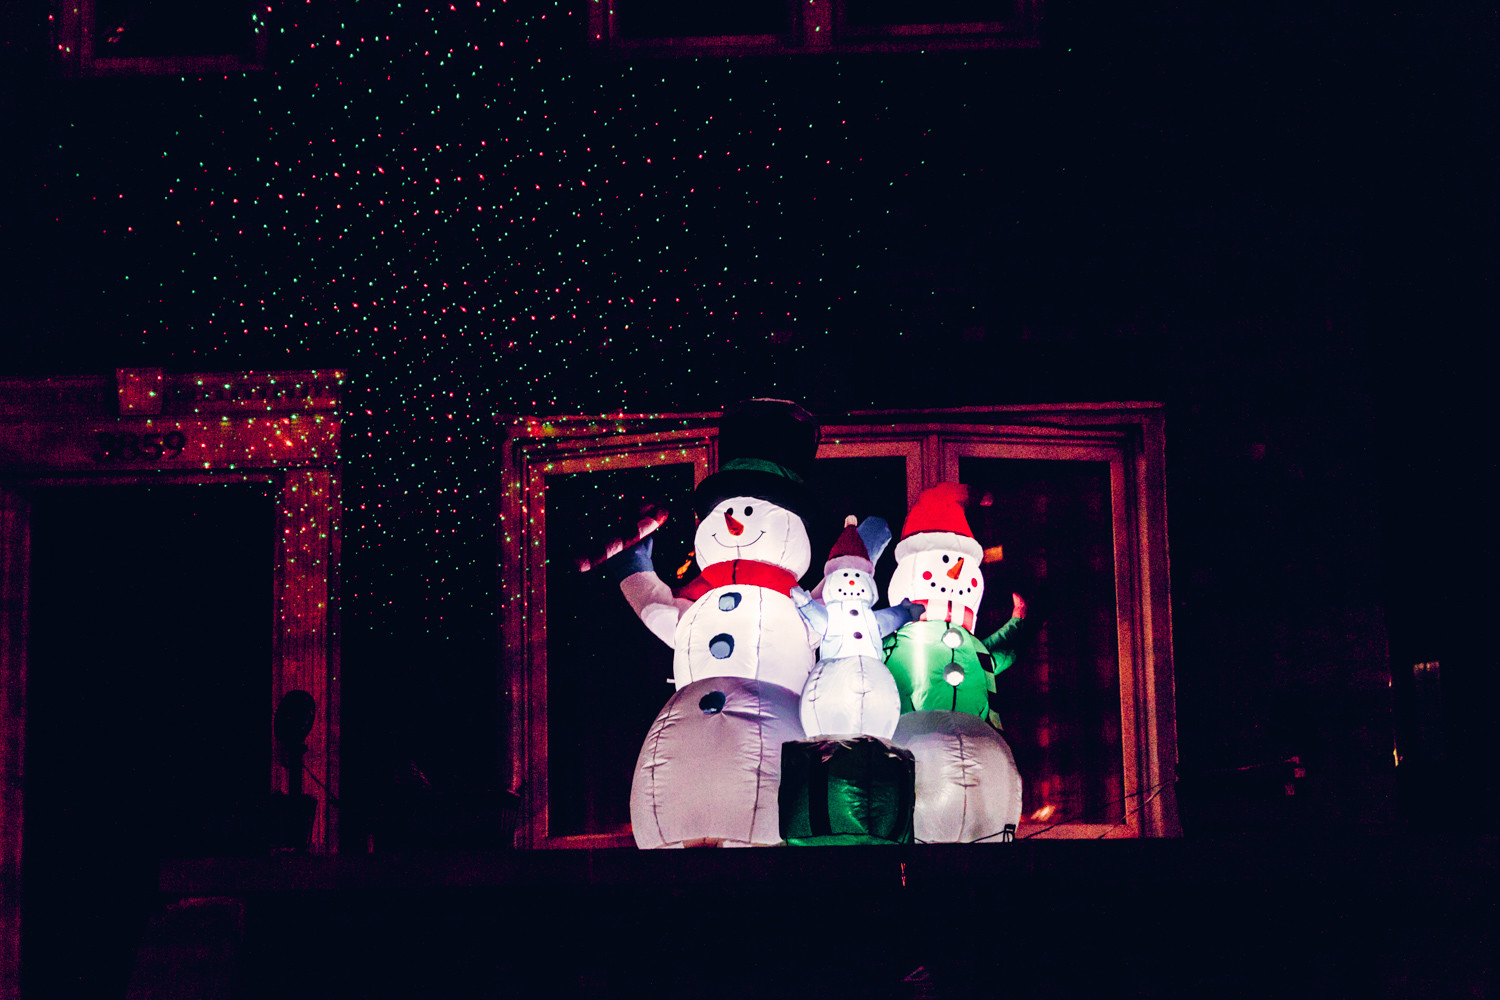 A family of snow people offer season's greetings in the dark of night. Snowmen have been a popular aspect of Christmas for decades, but the first known photograph of a snowman dates back to 1853 by Welsh photographer Mary Dillwyn. The 19th century snowman, however, lacked a corncob pipe and a button nose — or a carrot one, for that matter.